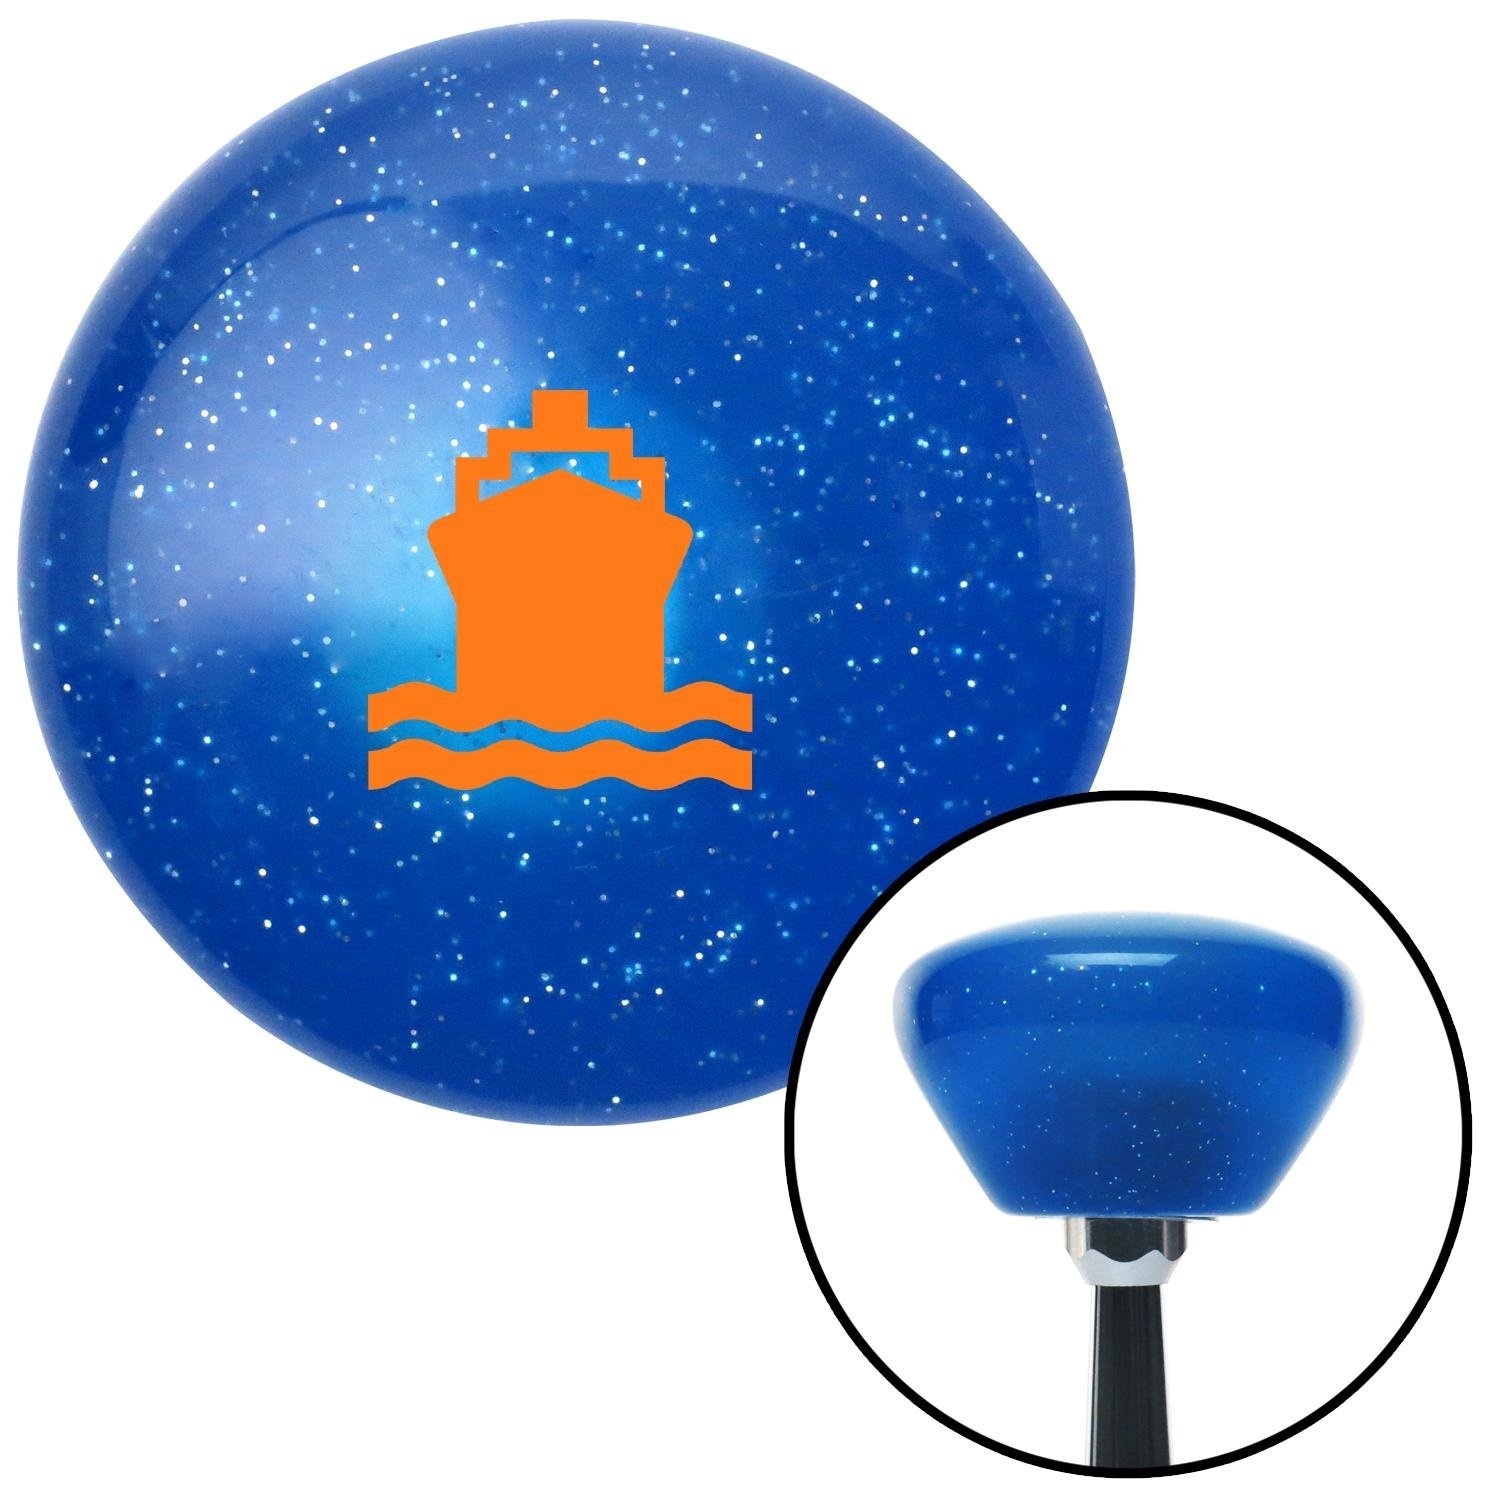 Orange Boat American Shifter 190680 Blue Retro Metal Flake Shift Knob with M16 x 1.5 Insert